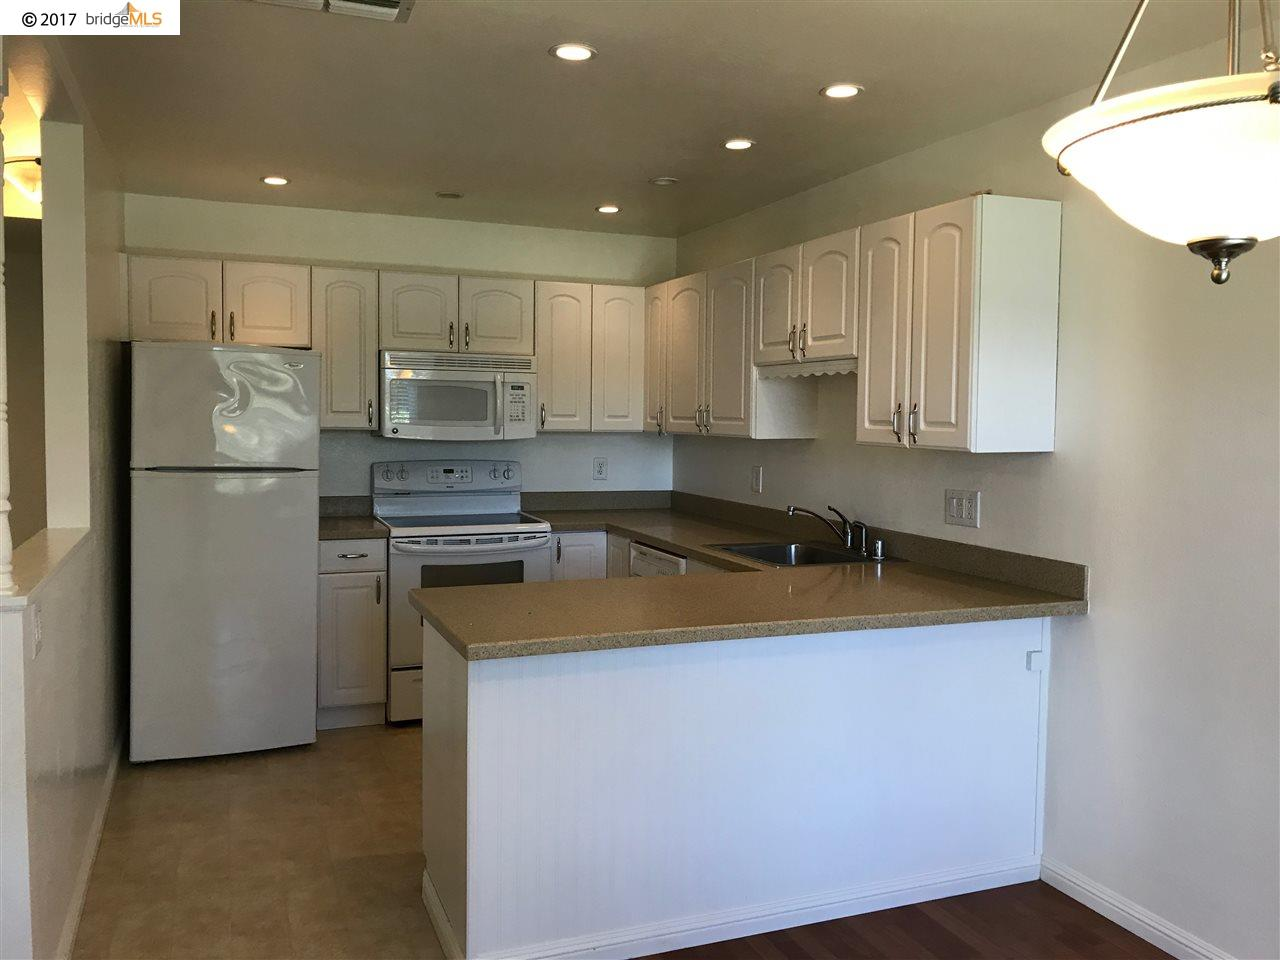 Additional photo for property listing at 2751 Winding Lane  Antioch, California 94531 United States